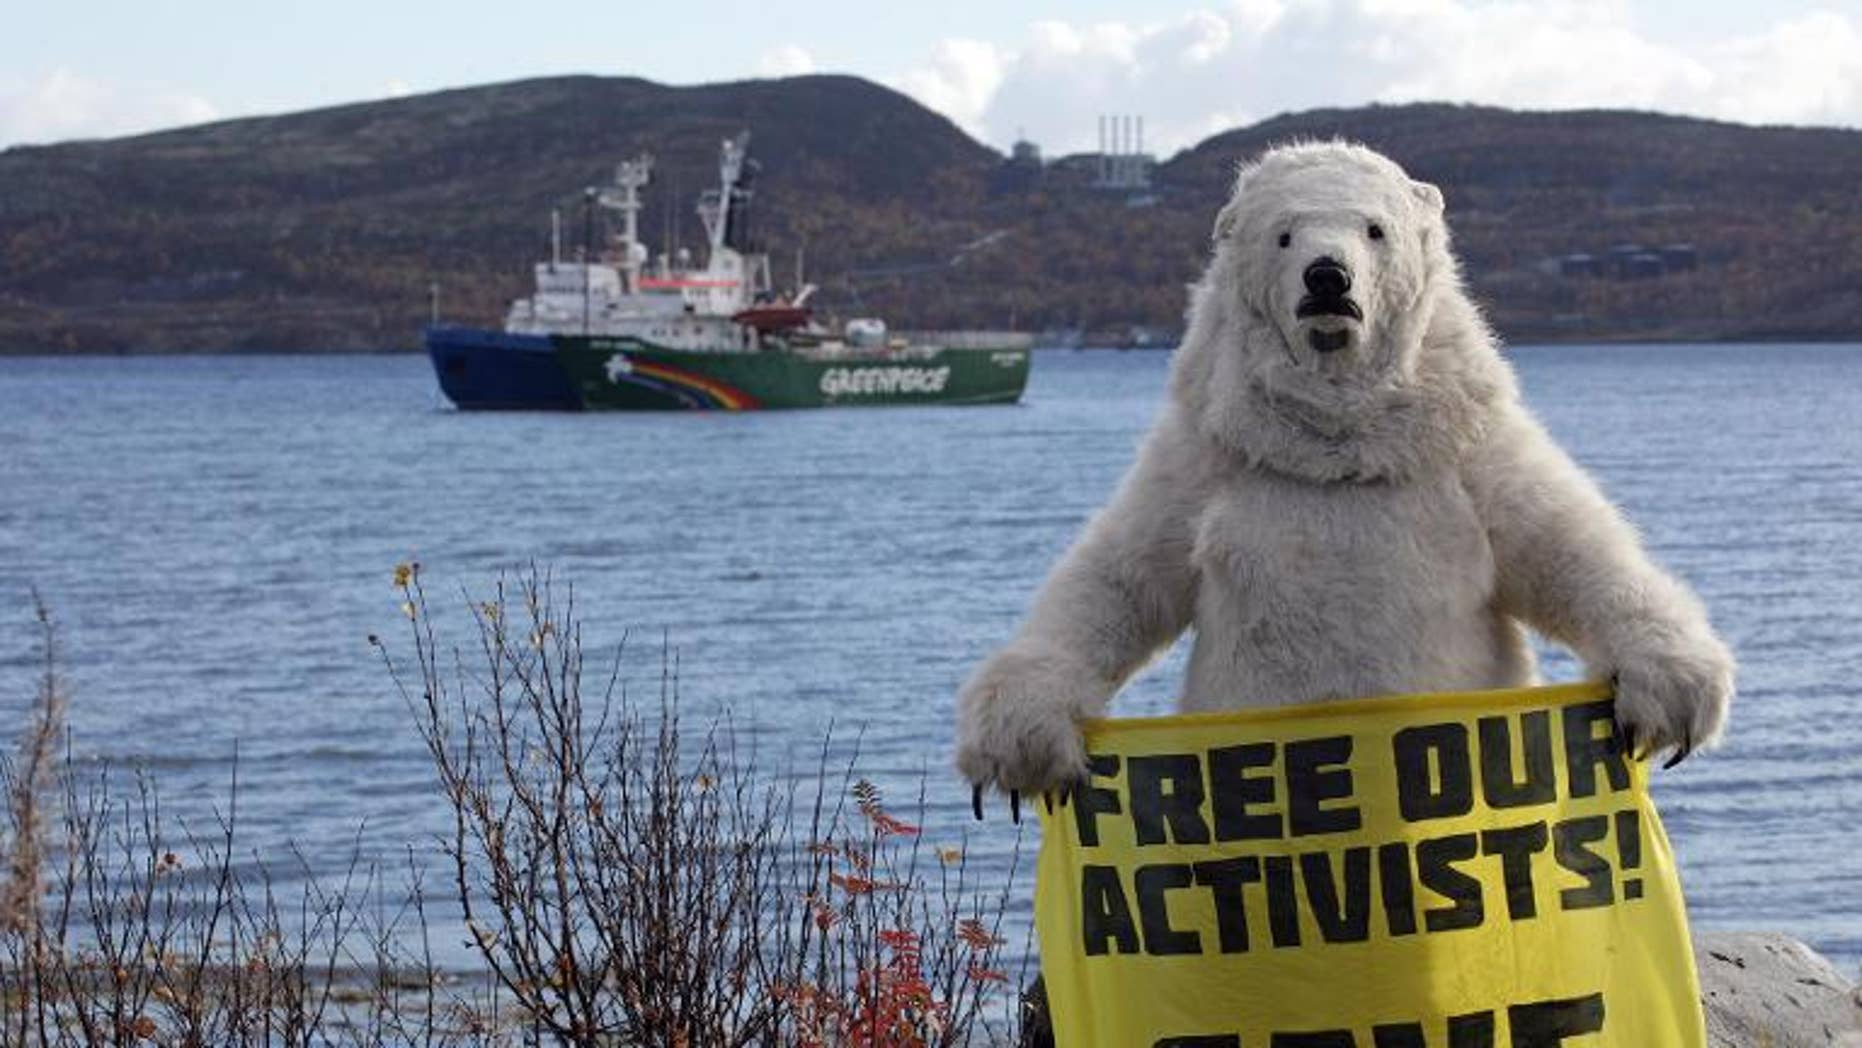 An activist dressed as a polar bear holds a banner in front of Greenpeace's Arctic protest ship, moored beside a Russian Coast Guard ship in Kola Bay near Murmansk on September 24, 2013, in a photo provided by Greenpeace International